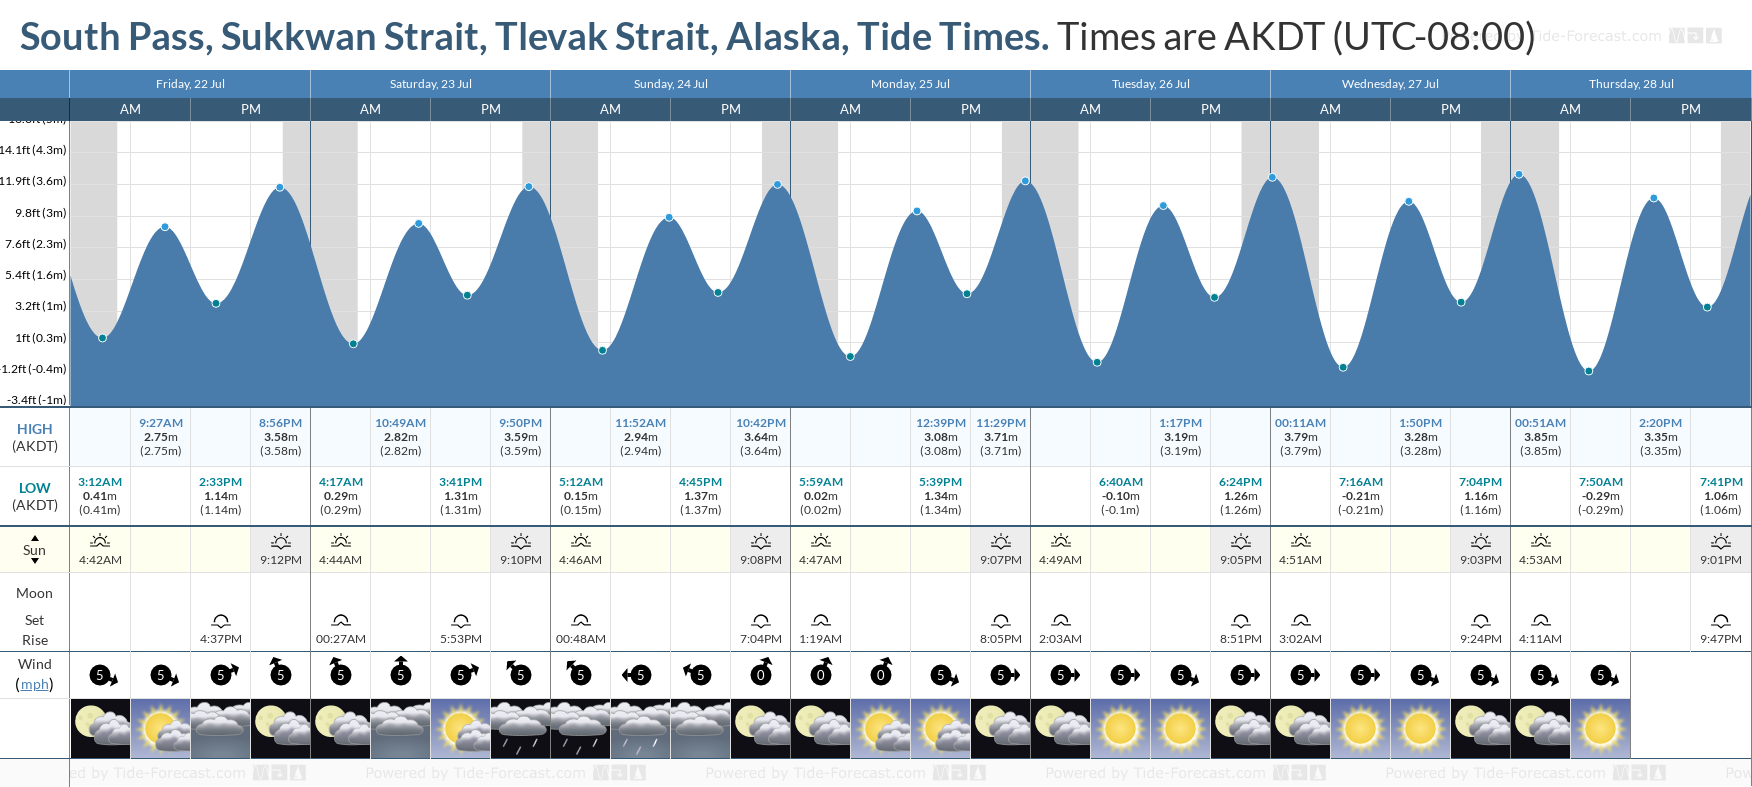 South Pass, Sukkwan Strait, Tlevak Strait, Alaska Tide Chart including high and low tide tide times for the next 7 days